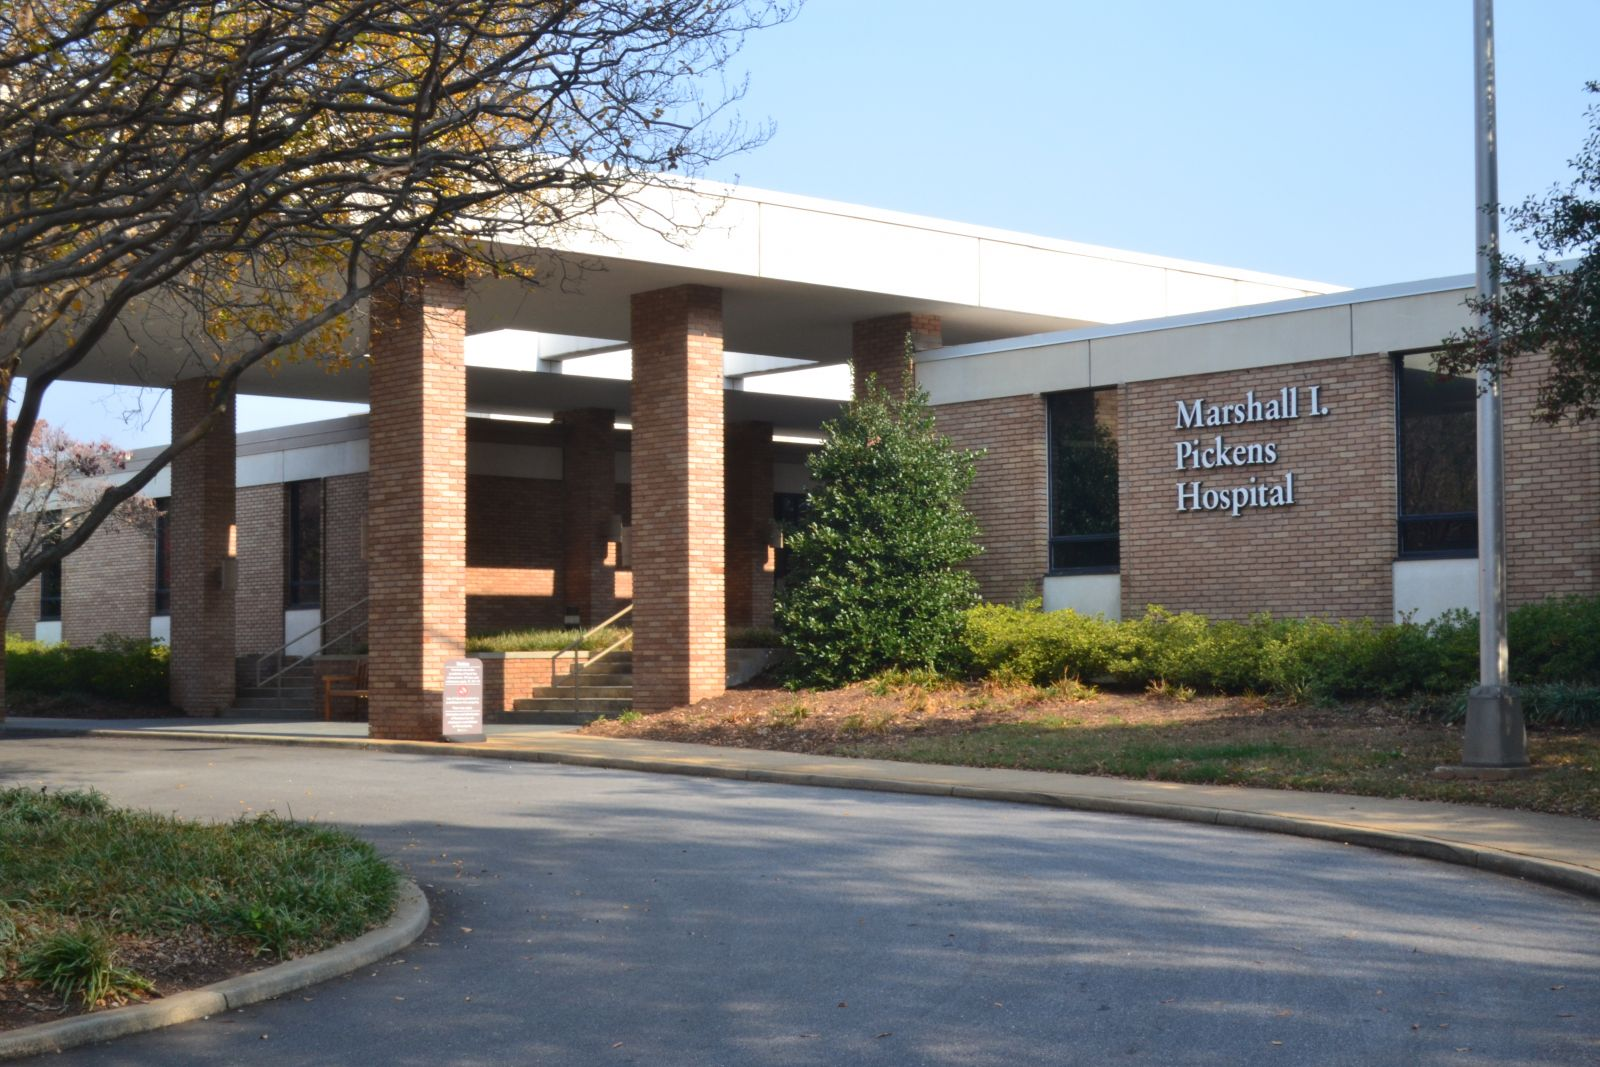 The GHS partnership with Acadia will create a new 80,000-square-foot inpatient behavioral health facility on the Greenville Memorial campus, and will replace the Marshall I. Pickens Hospital, which will be torn down. (Photo by Teresa Cutlip)